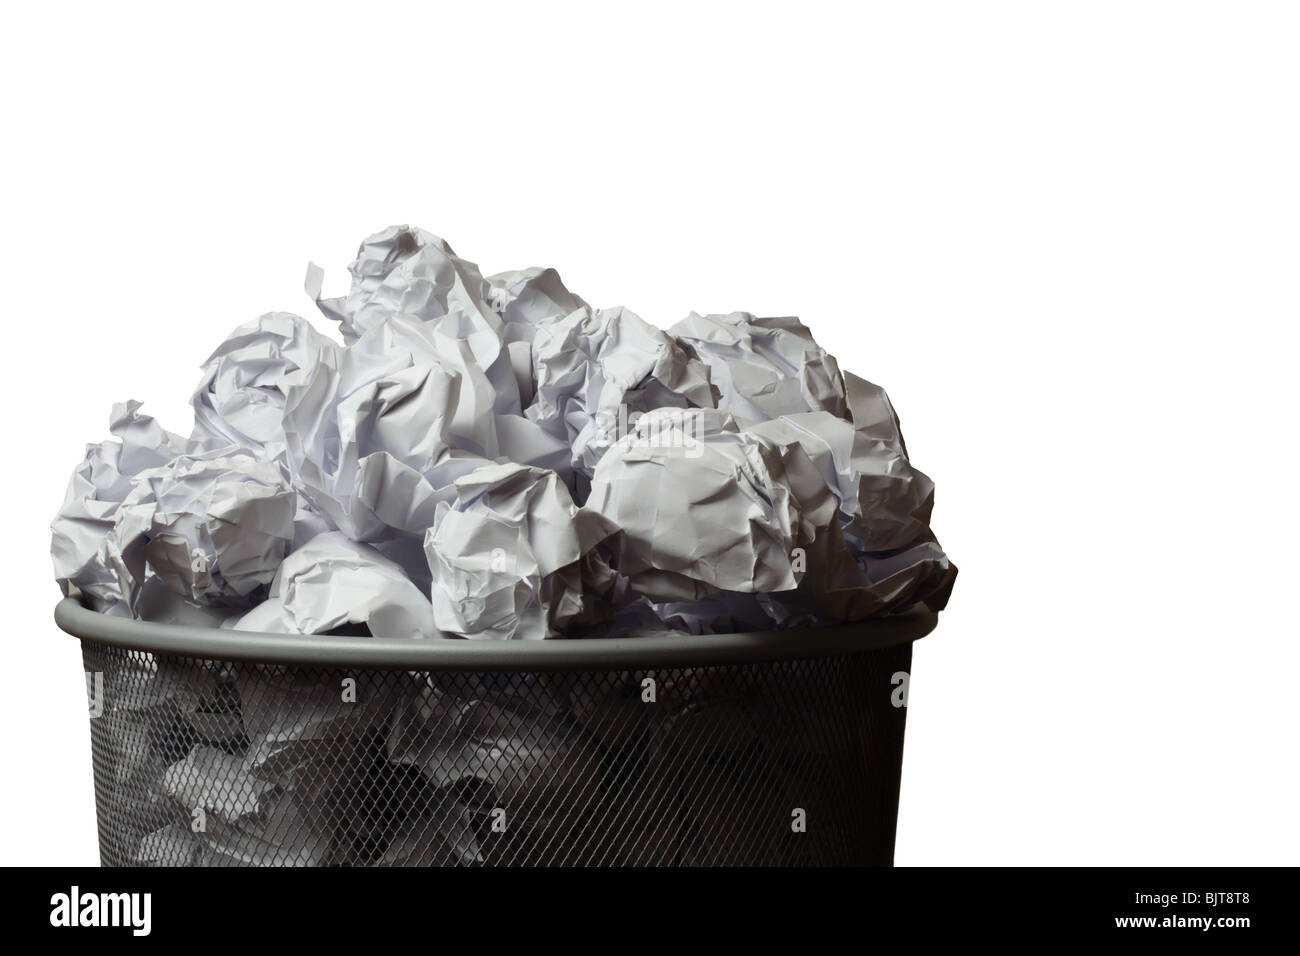 Waste bin full of screwed up pieces of paper. Cutout on a white background with space for copy. - Stock Image